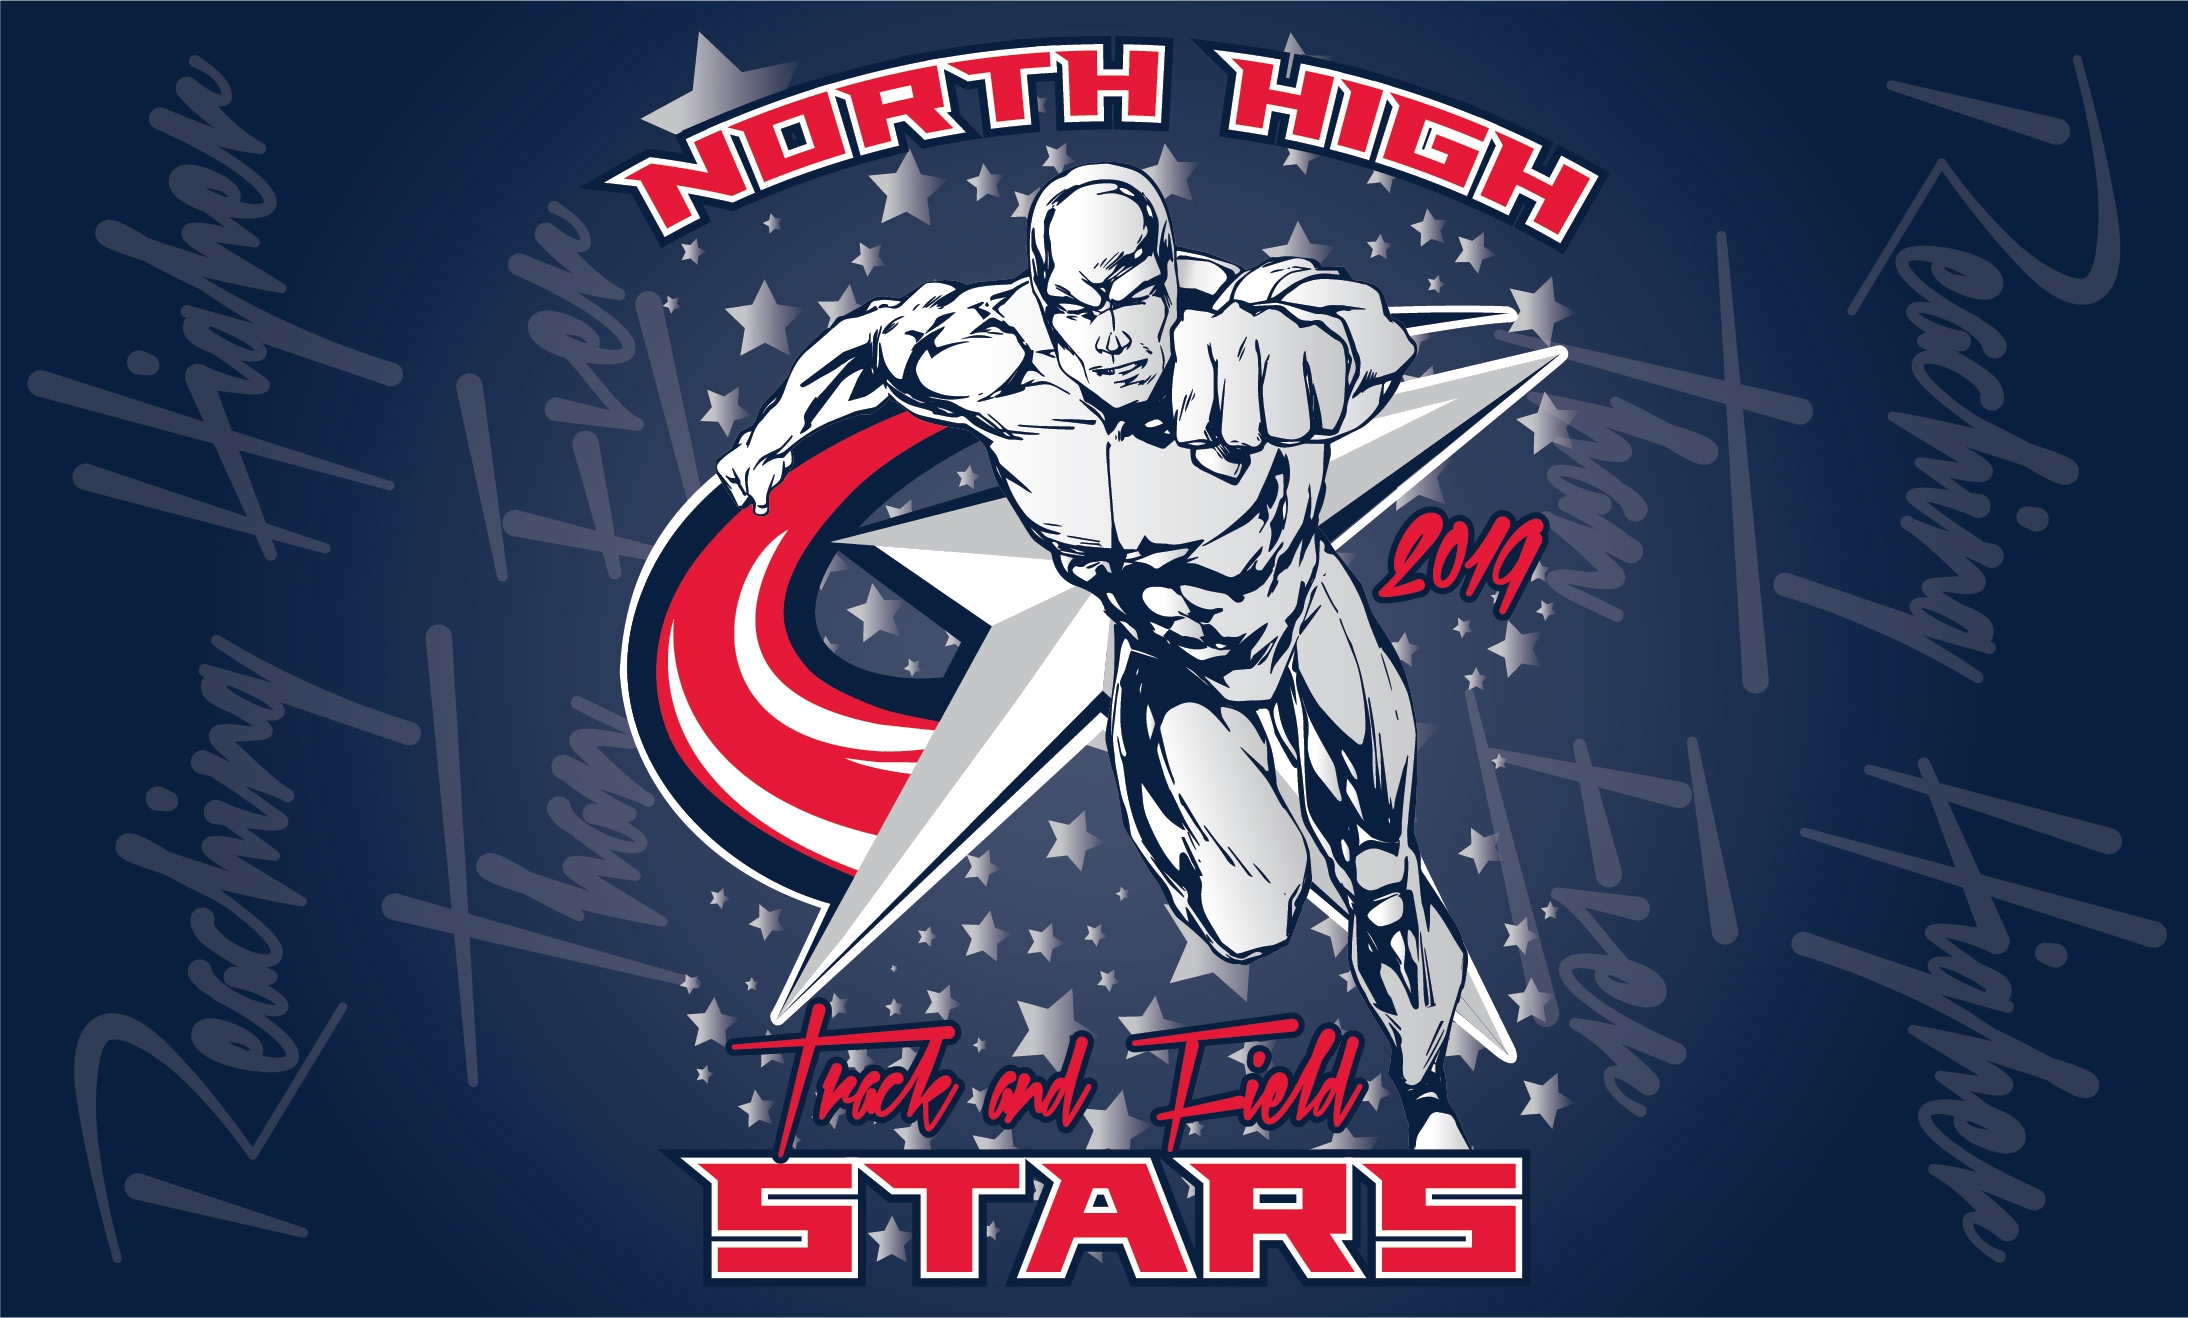 North High Track and Field